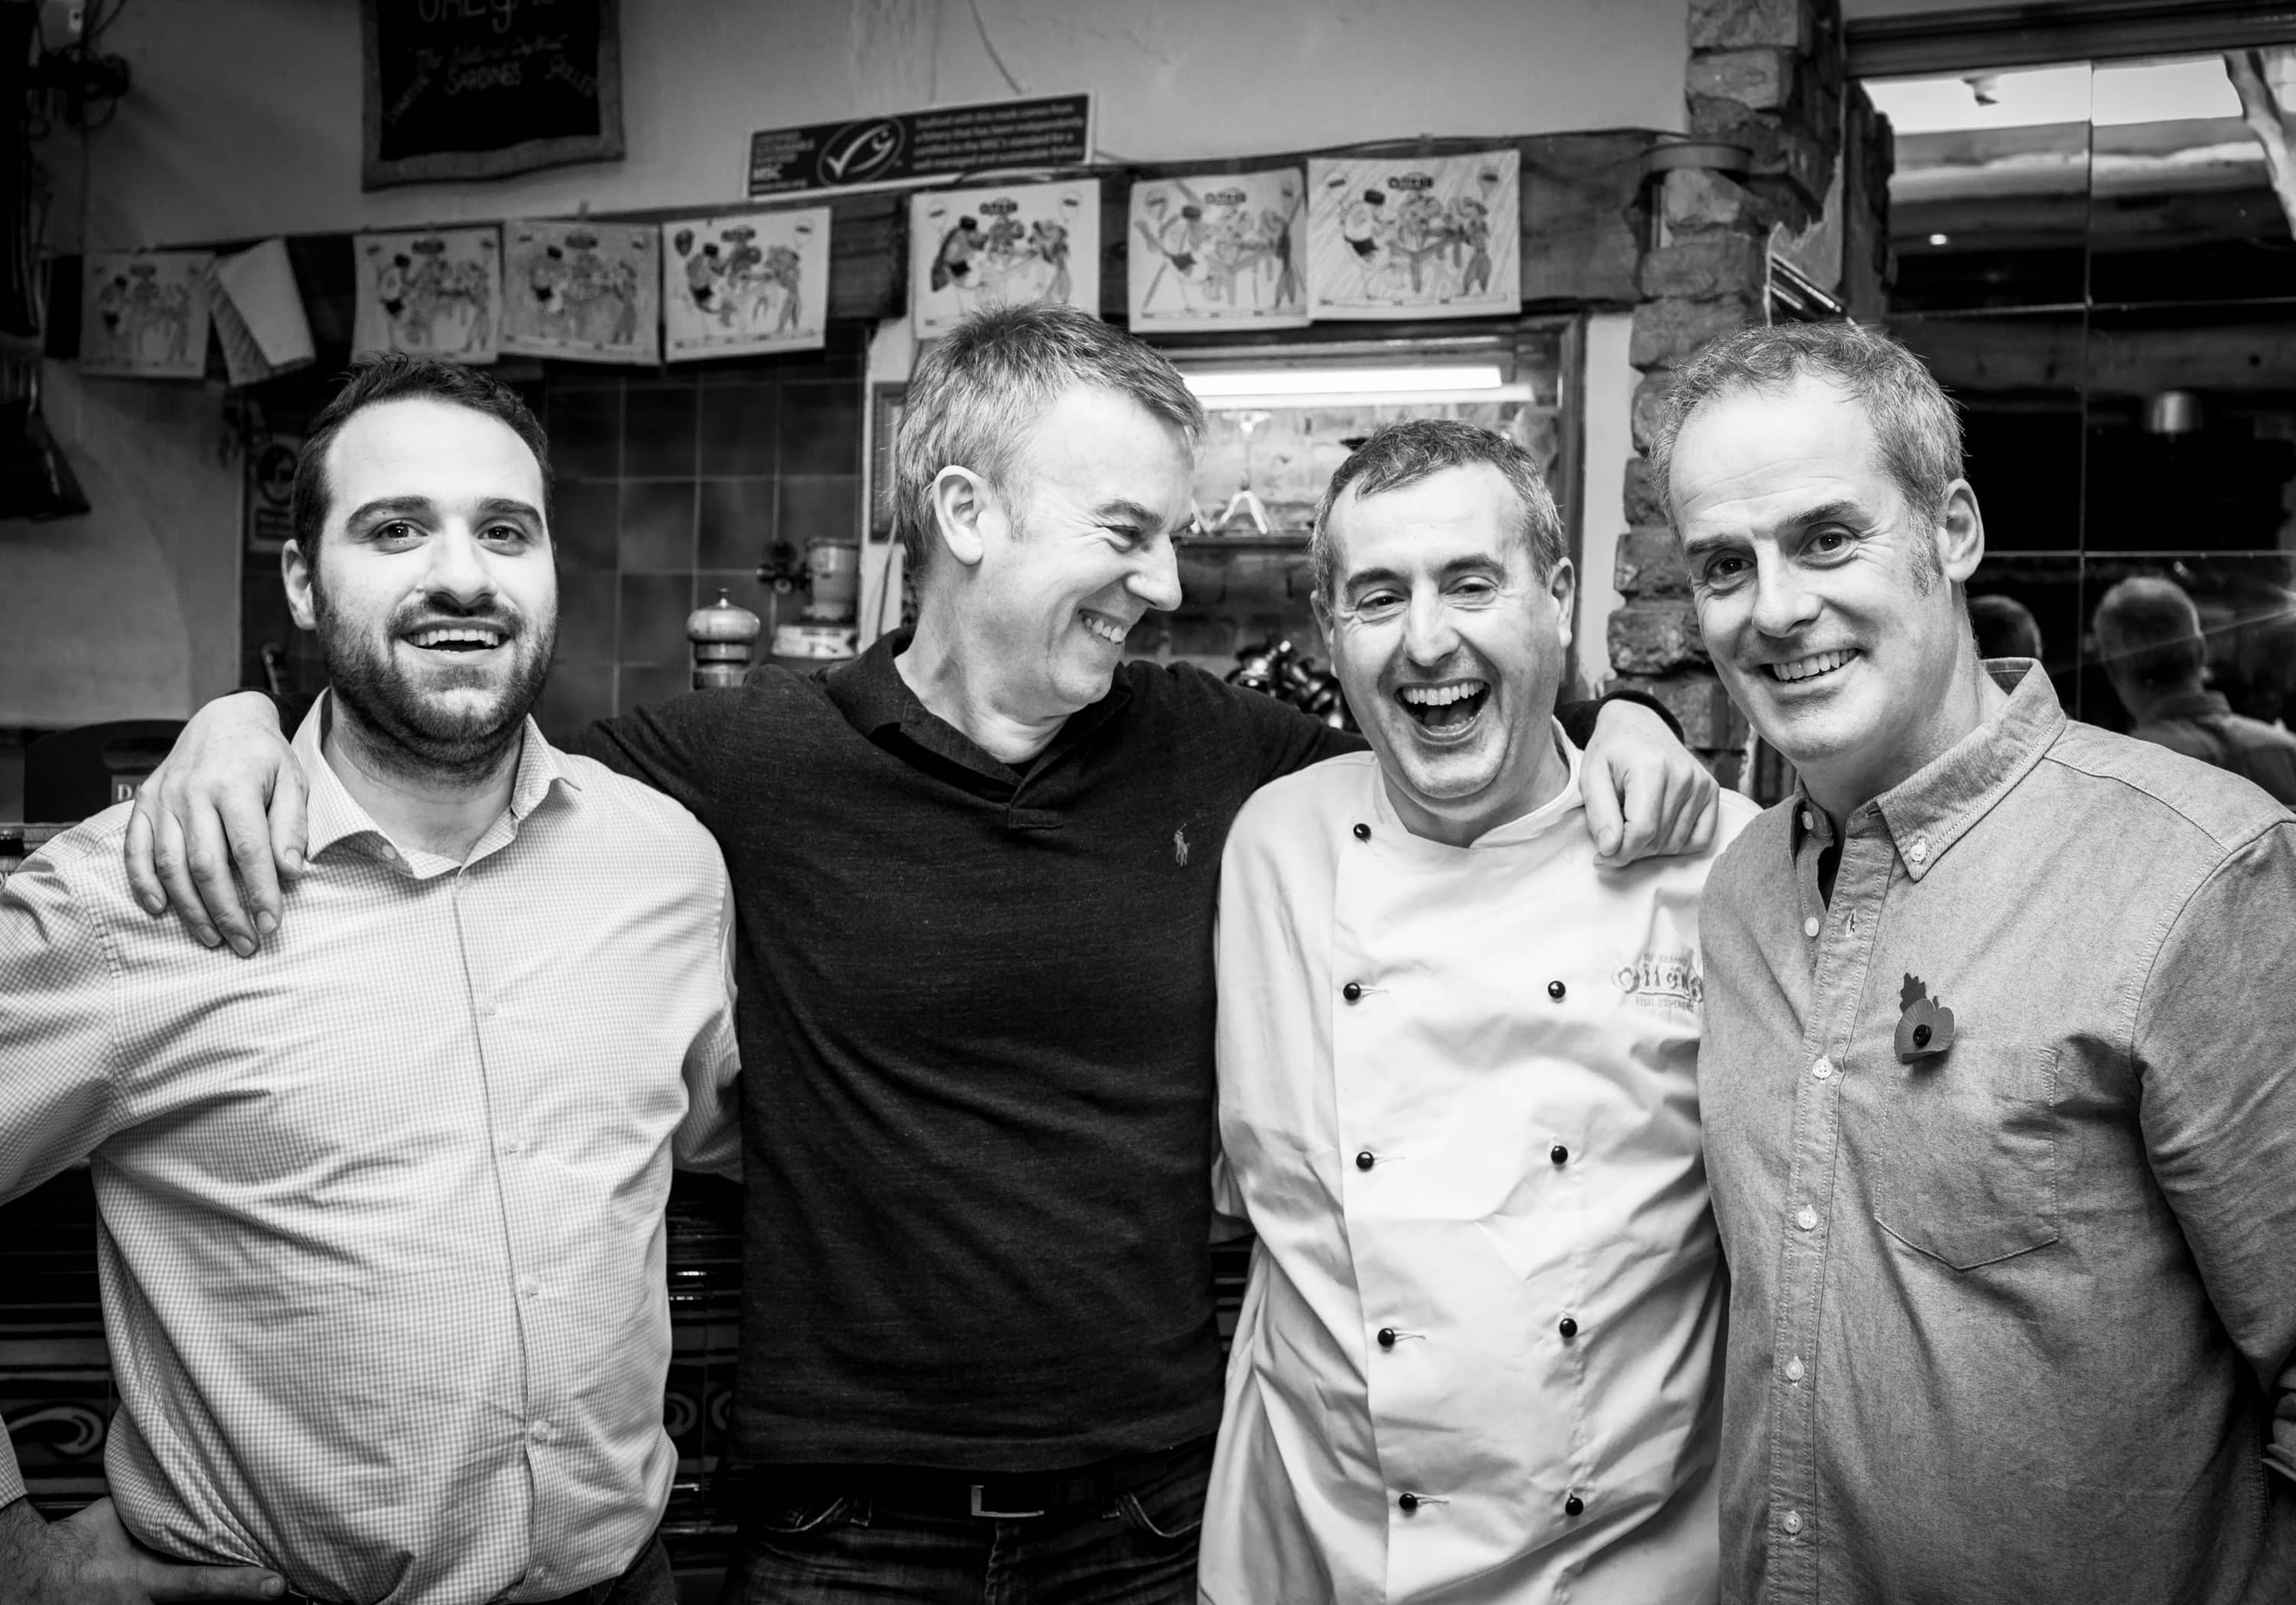 Photo of Stelios from Ceres | Pure Food Innovation, Fred Capel from Chez Fred, Harry Niazi from Olleys and Phil Vickery TV Chef